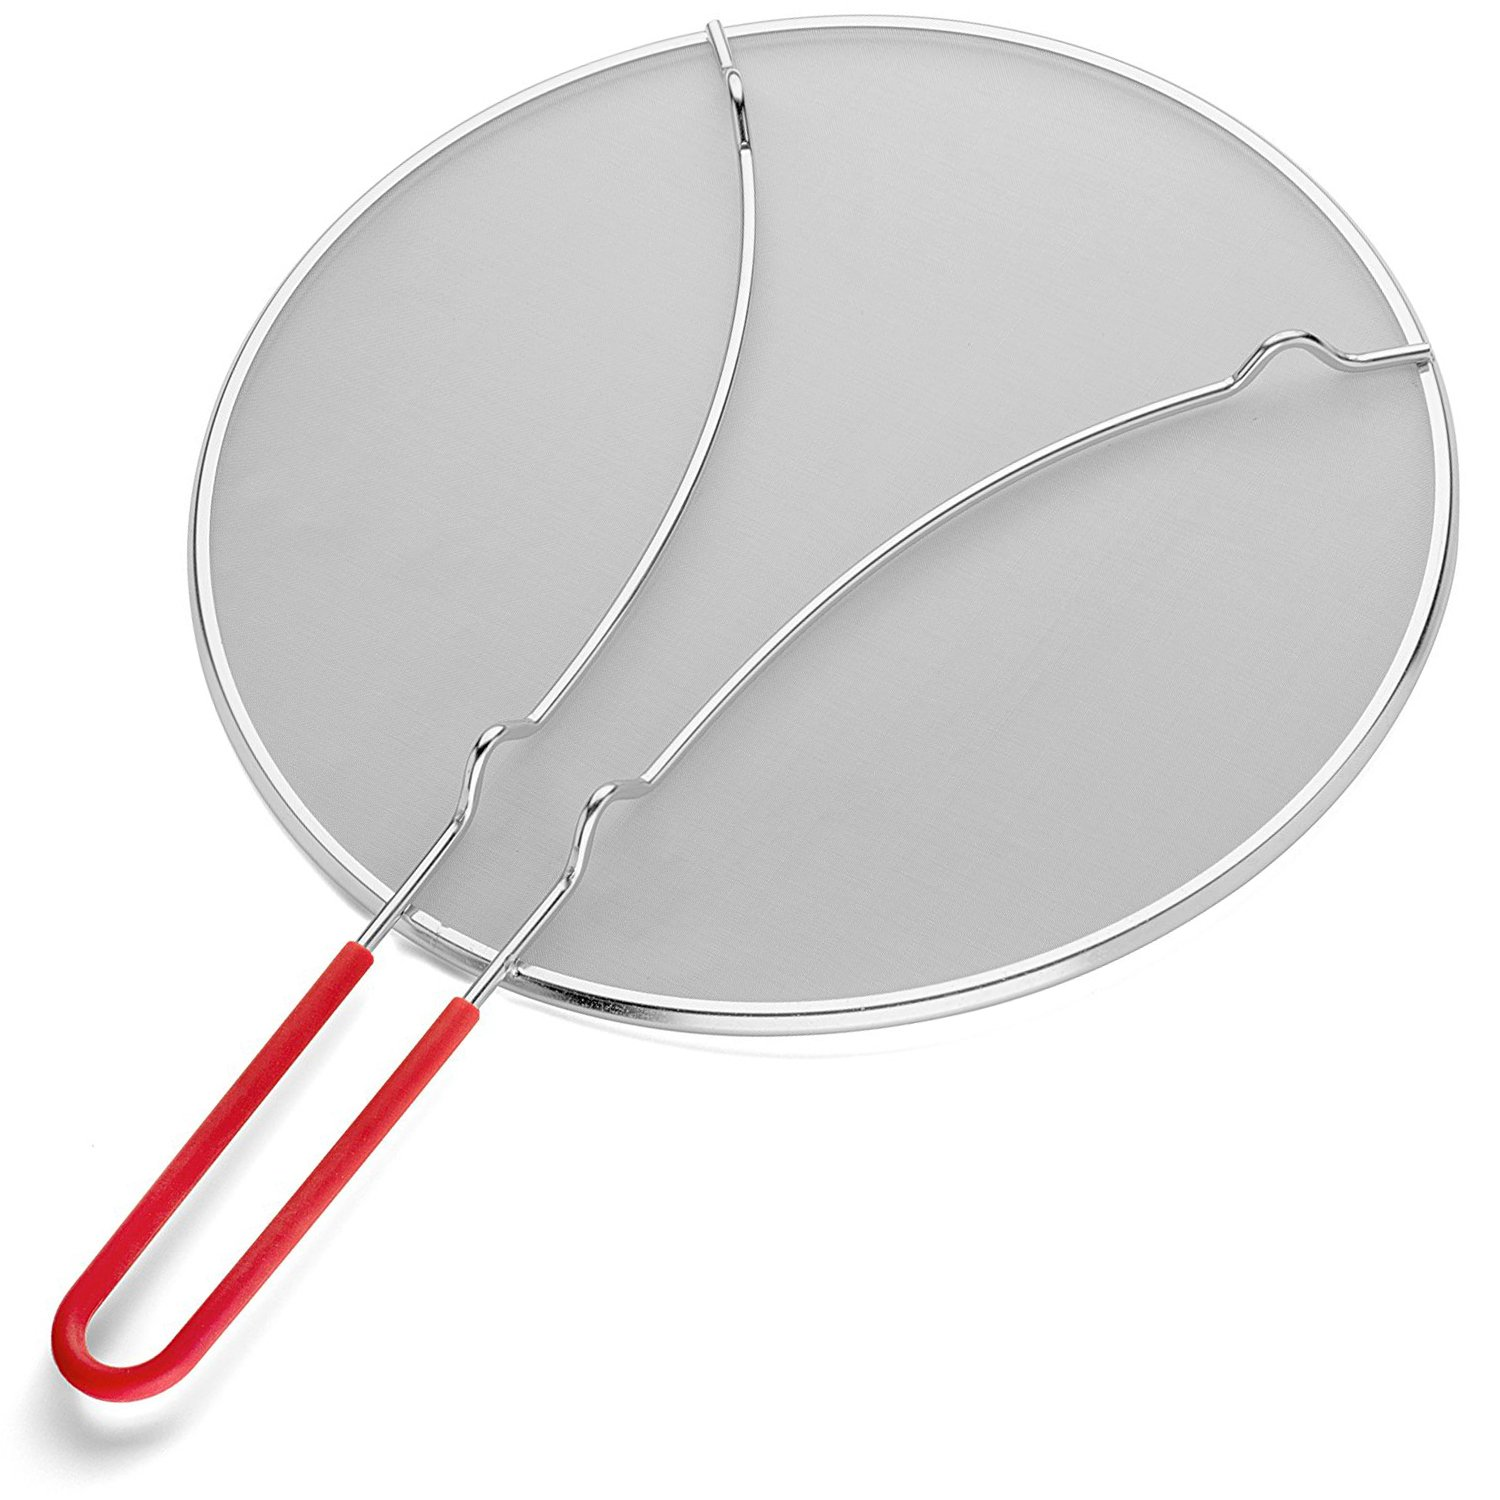 "Splatter Screen for Cooking 13"" - Silicone Handle - Stops Hot Oil Splash - Protects Skin from Burns - Grease Guard for Frying Pan Keeps Your Kitchen Clean - Heavy Duty Ultra Fine Mesh"